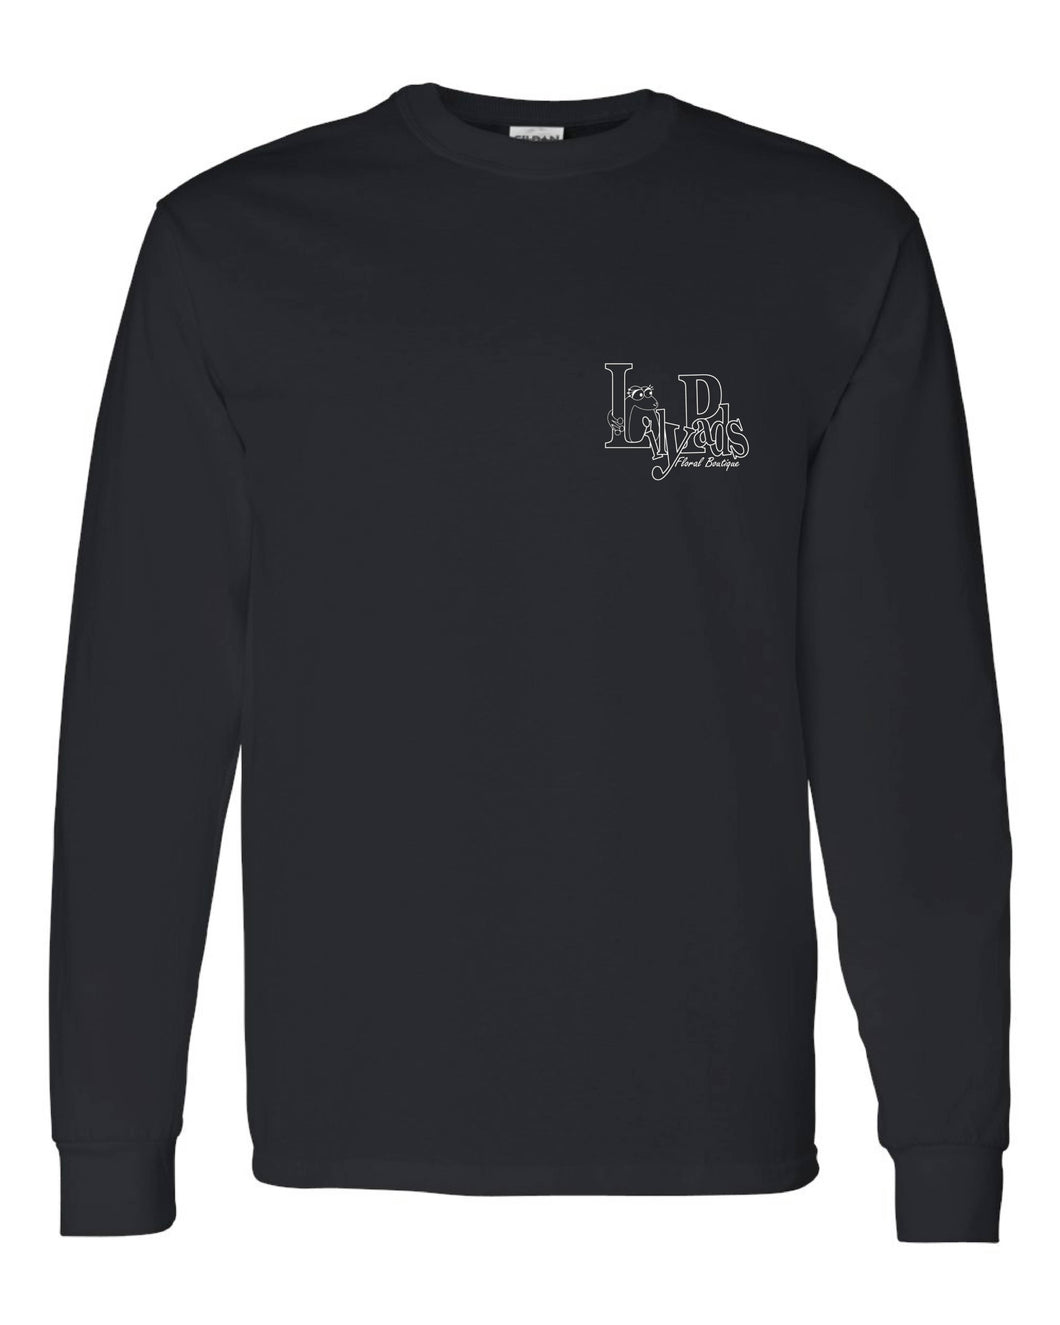 LilyPads - Long Sleeve Tee